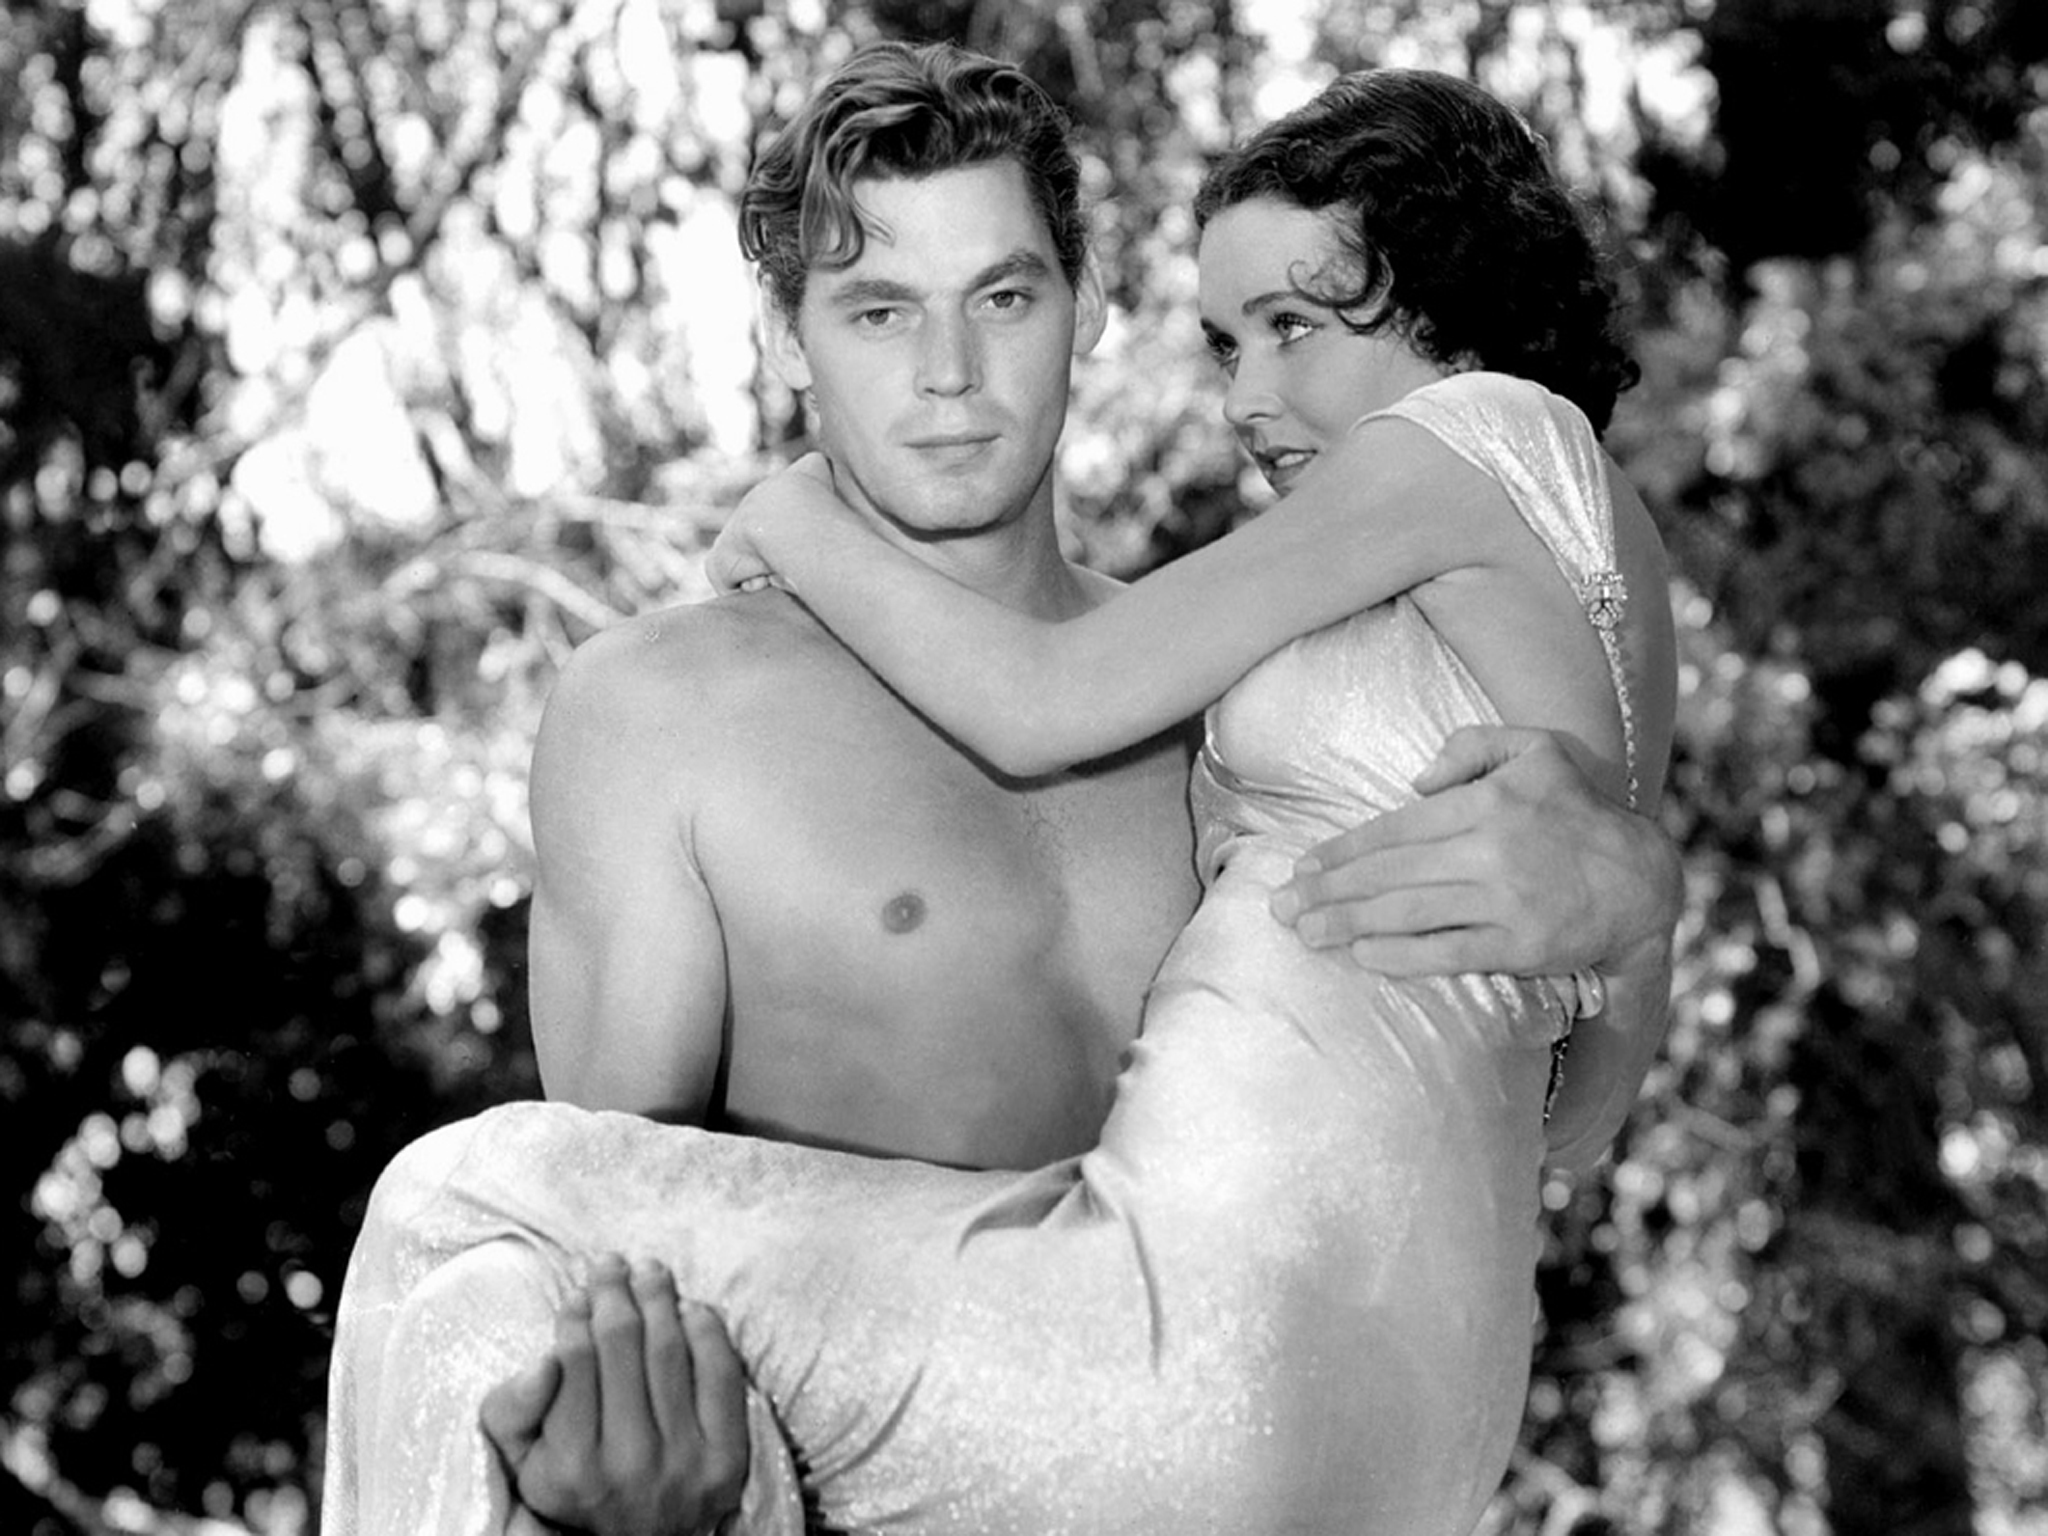 Tarzan, the Ape Man (1932)